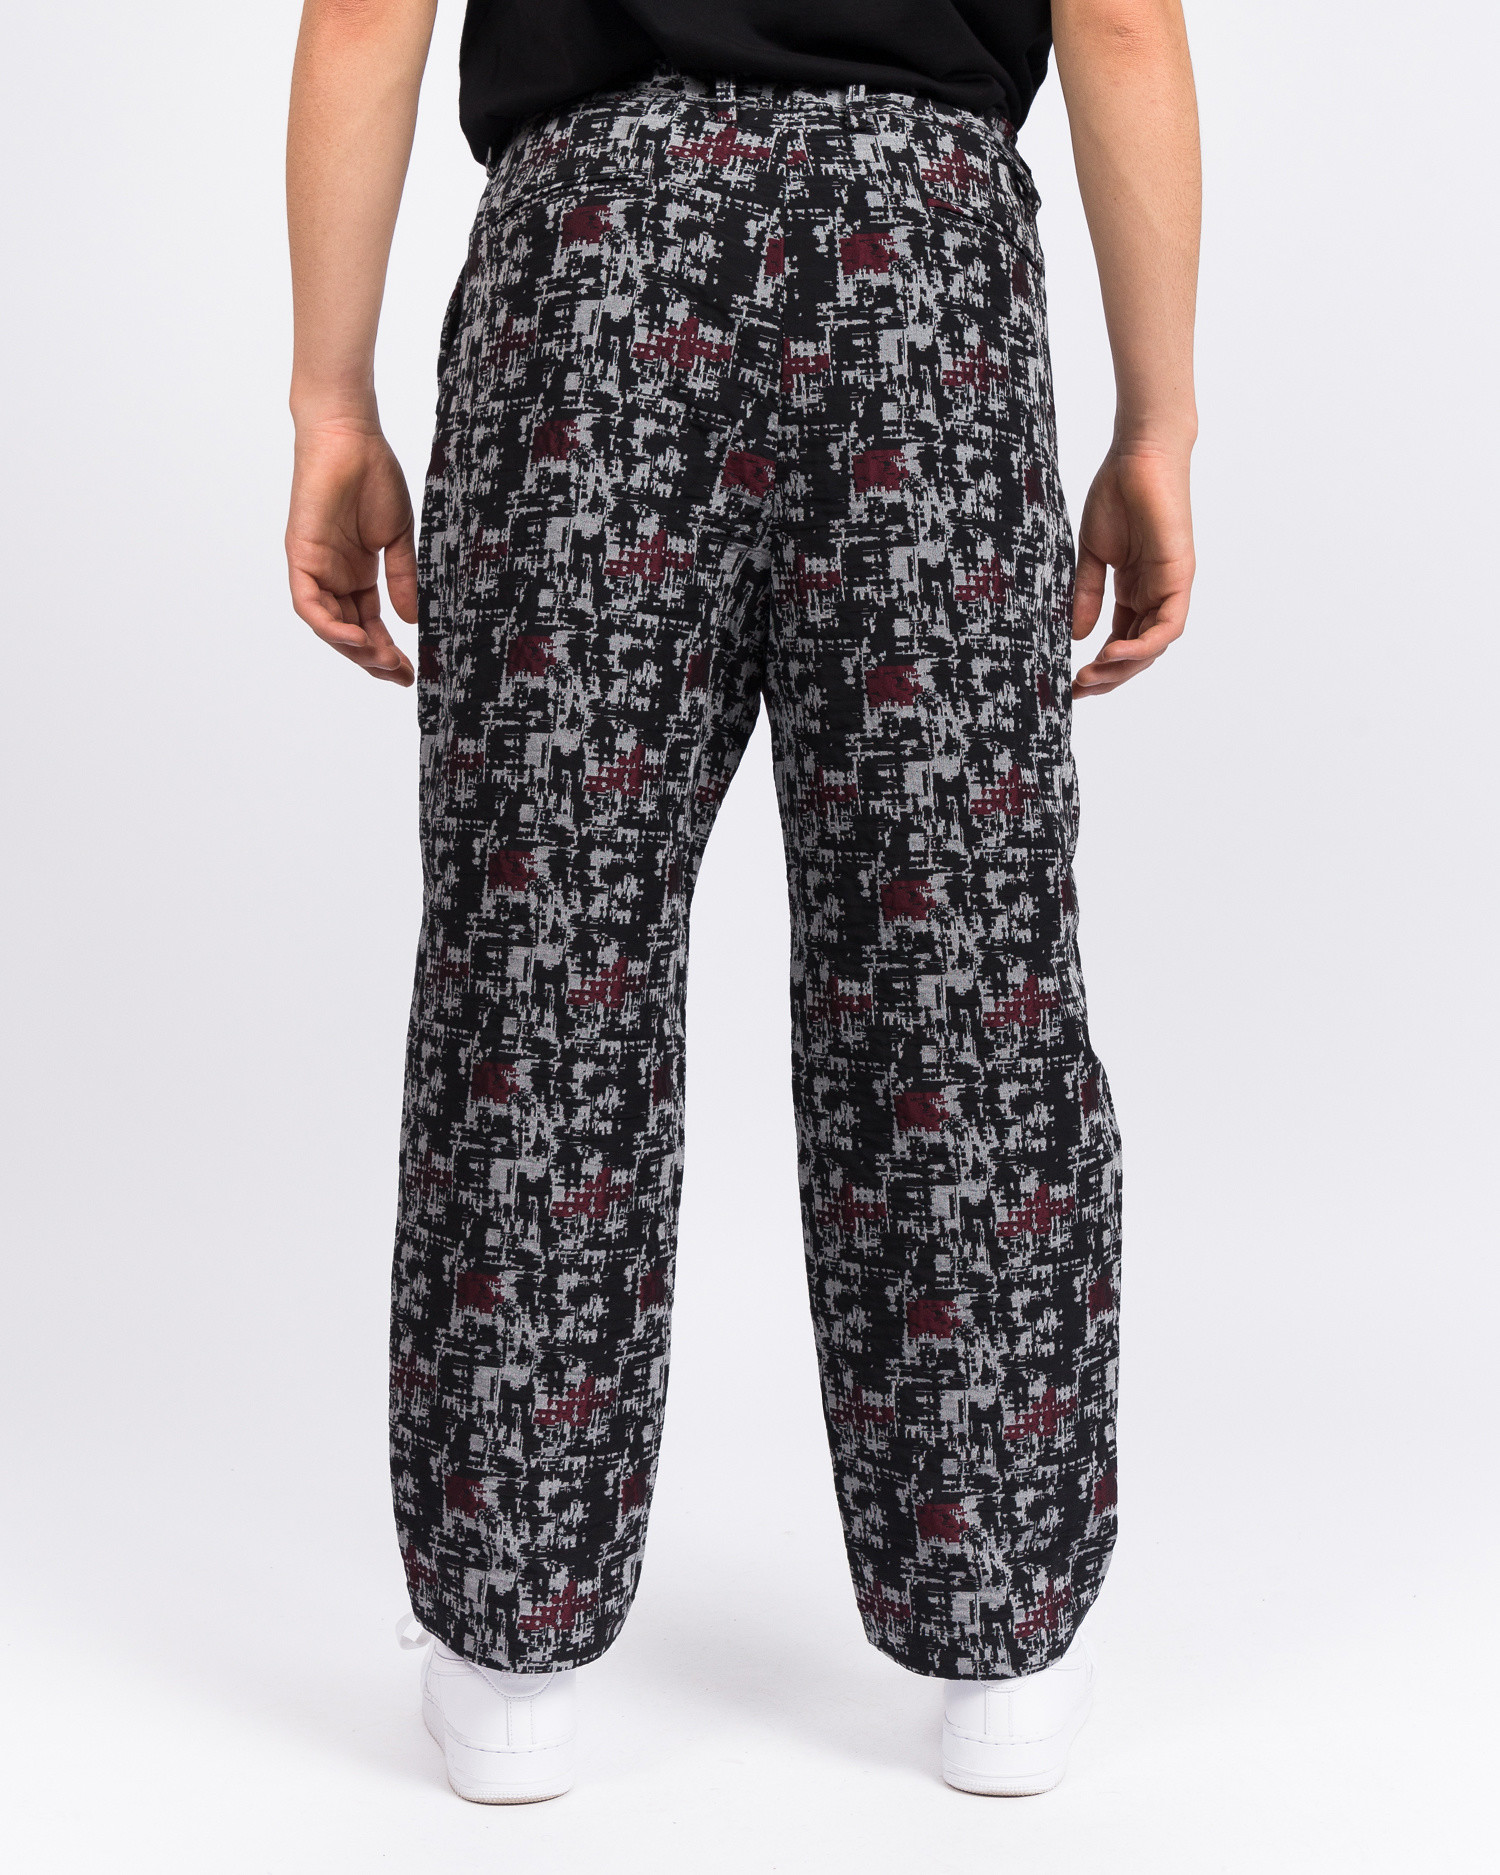 White Mountaineering Mosaic Jacquard 2 Tucked Wide Corduroy Pants